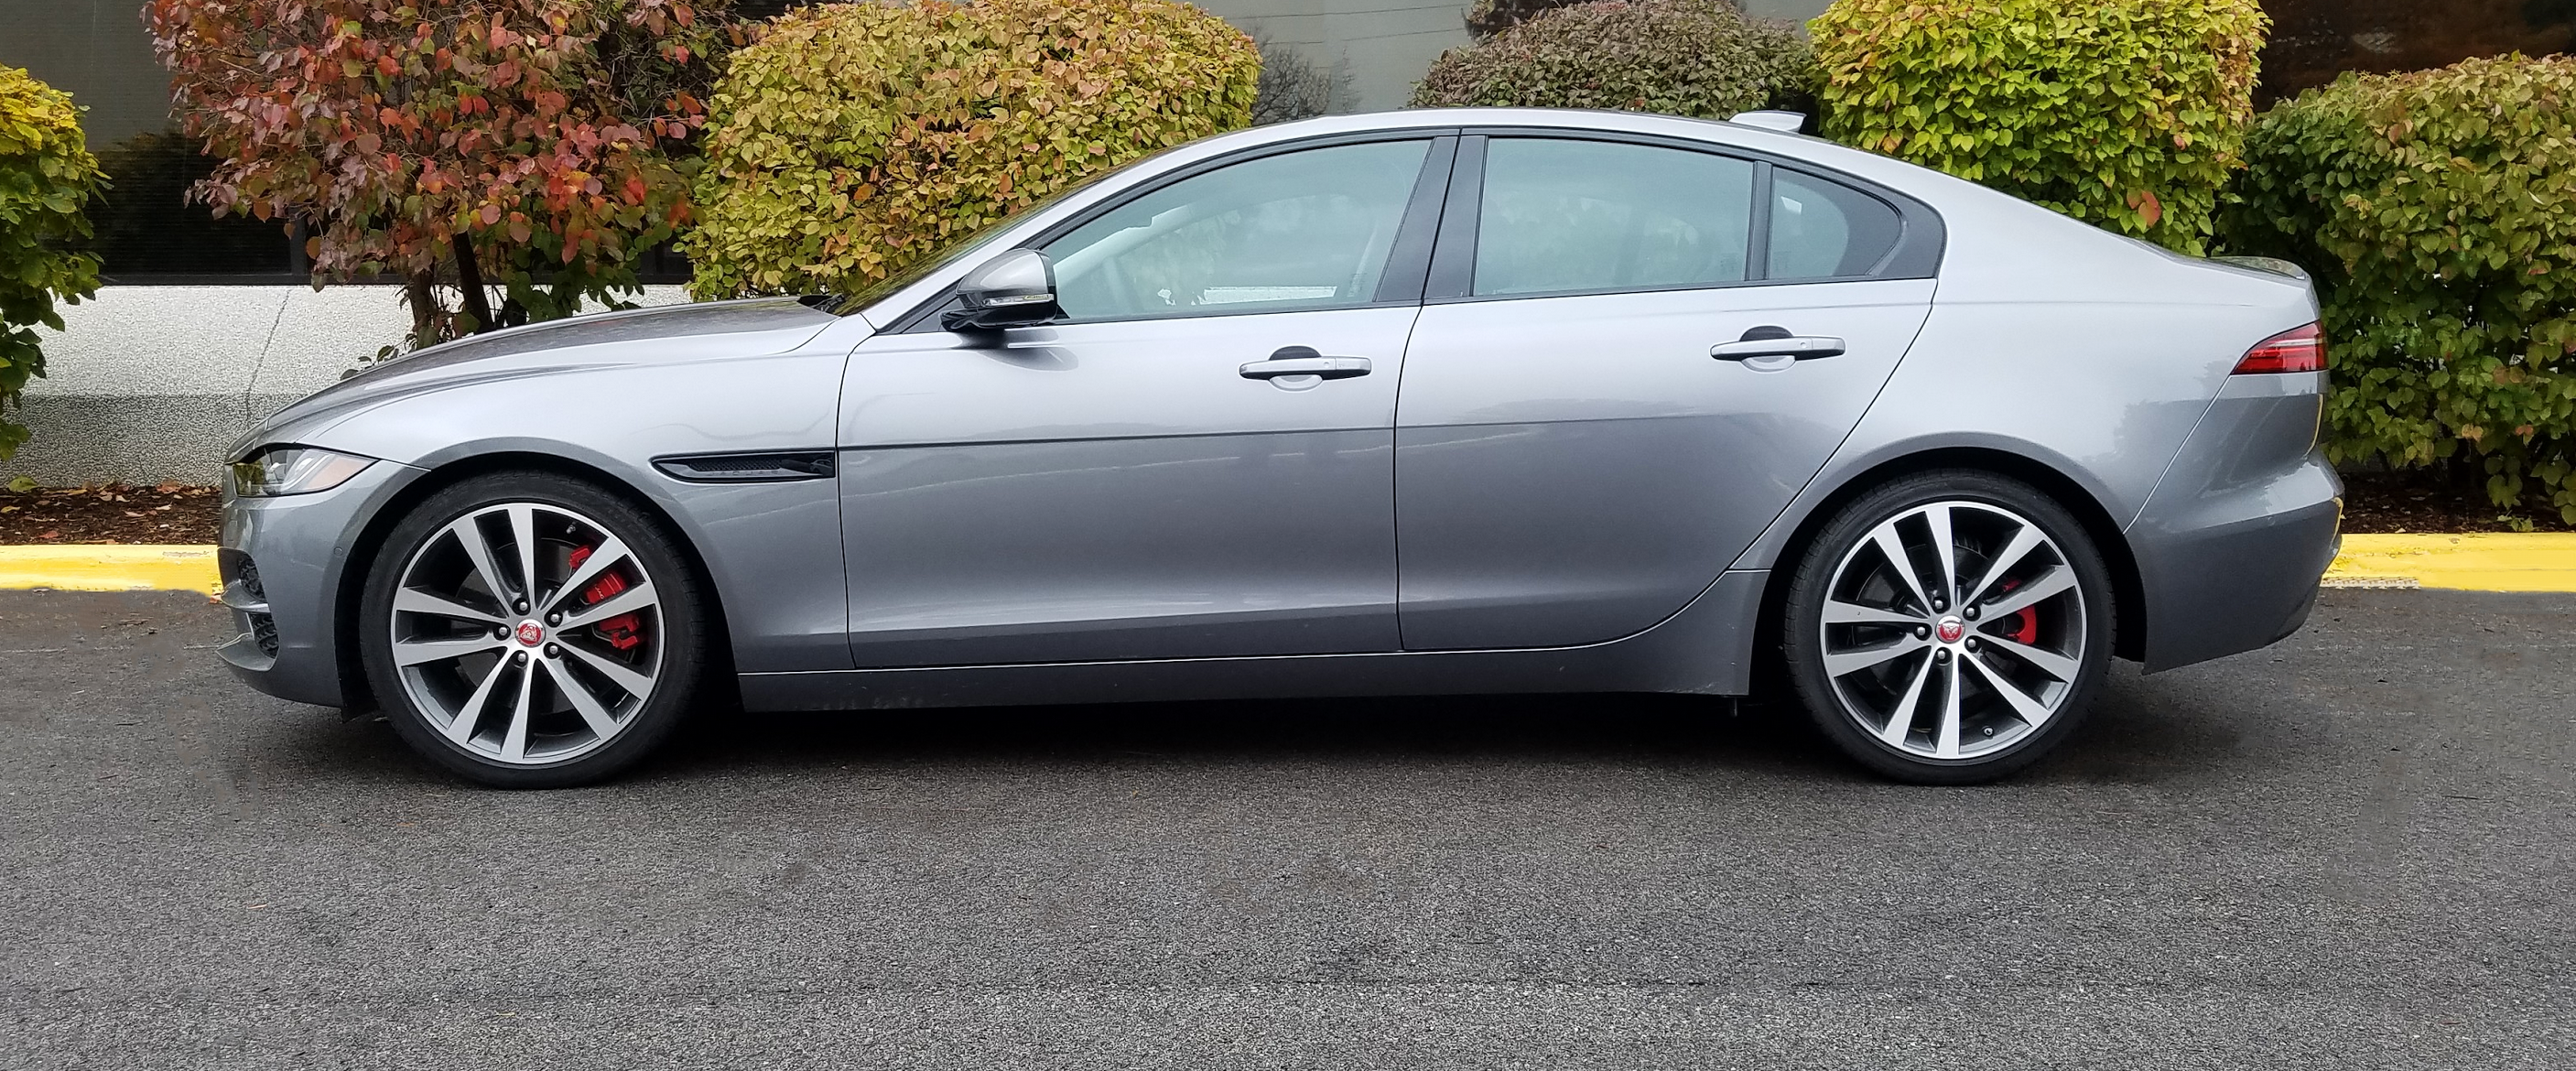 2020 Jaguar XE in Eiger Grey